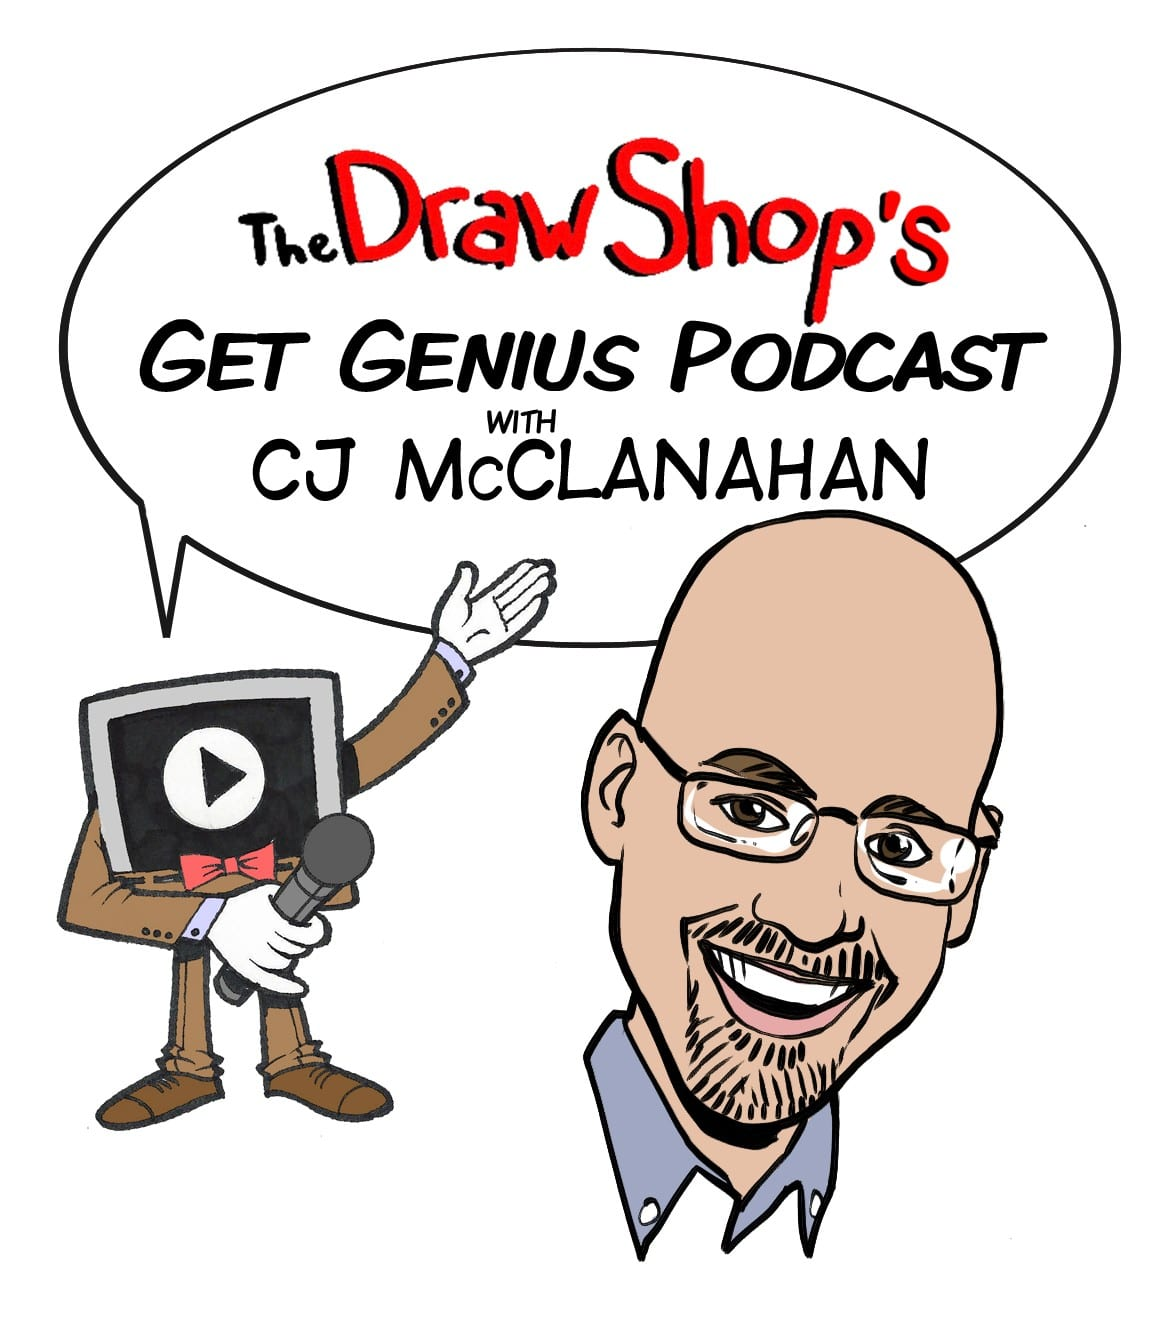 Finding Happiness as an Overachiever, with CJ McClanahan